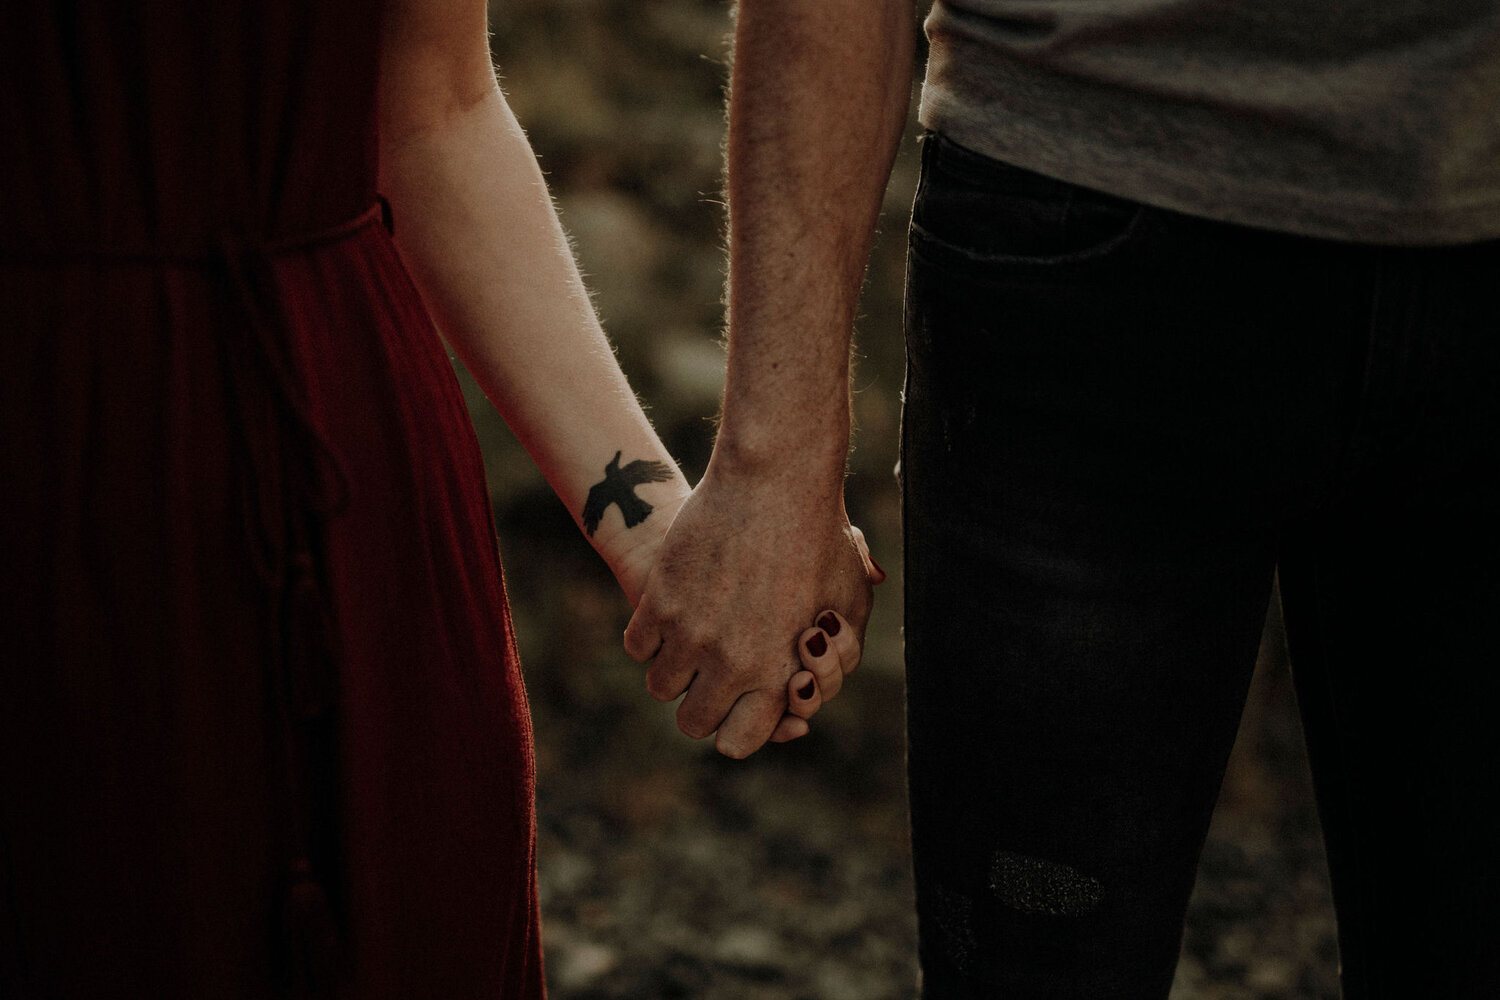 woman and man holding their hands bird tattoo on her wrist